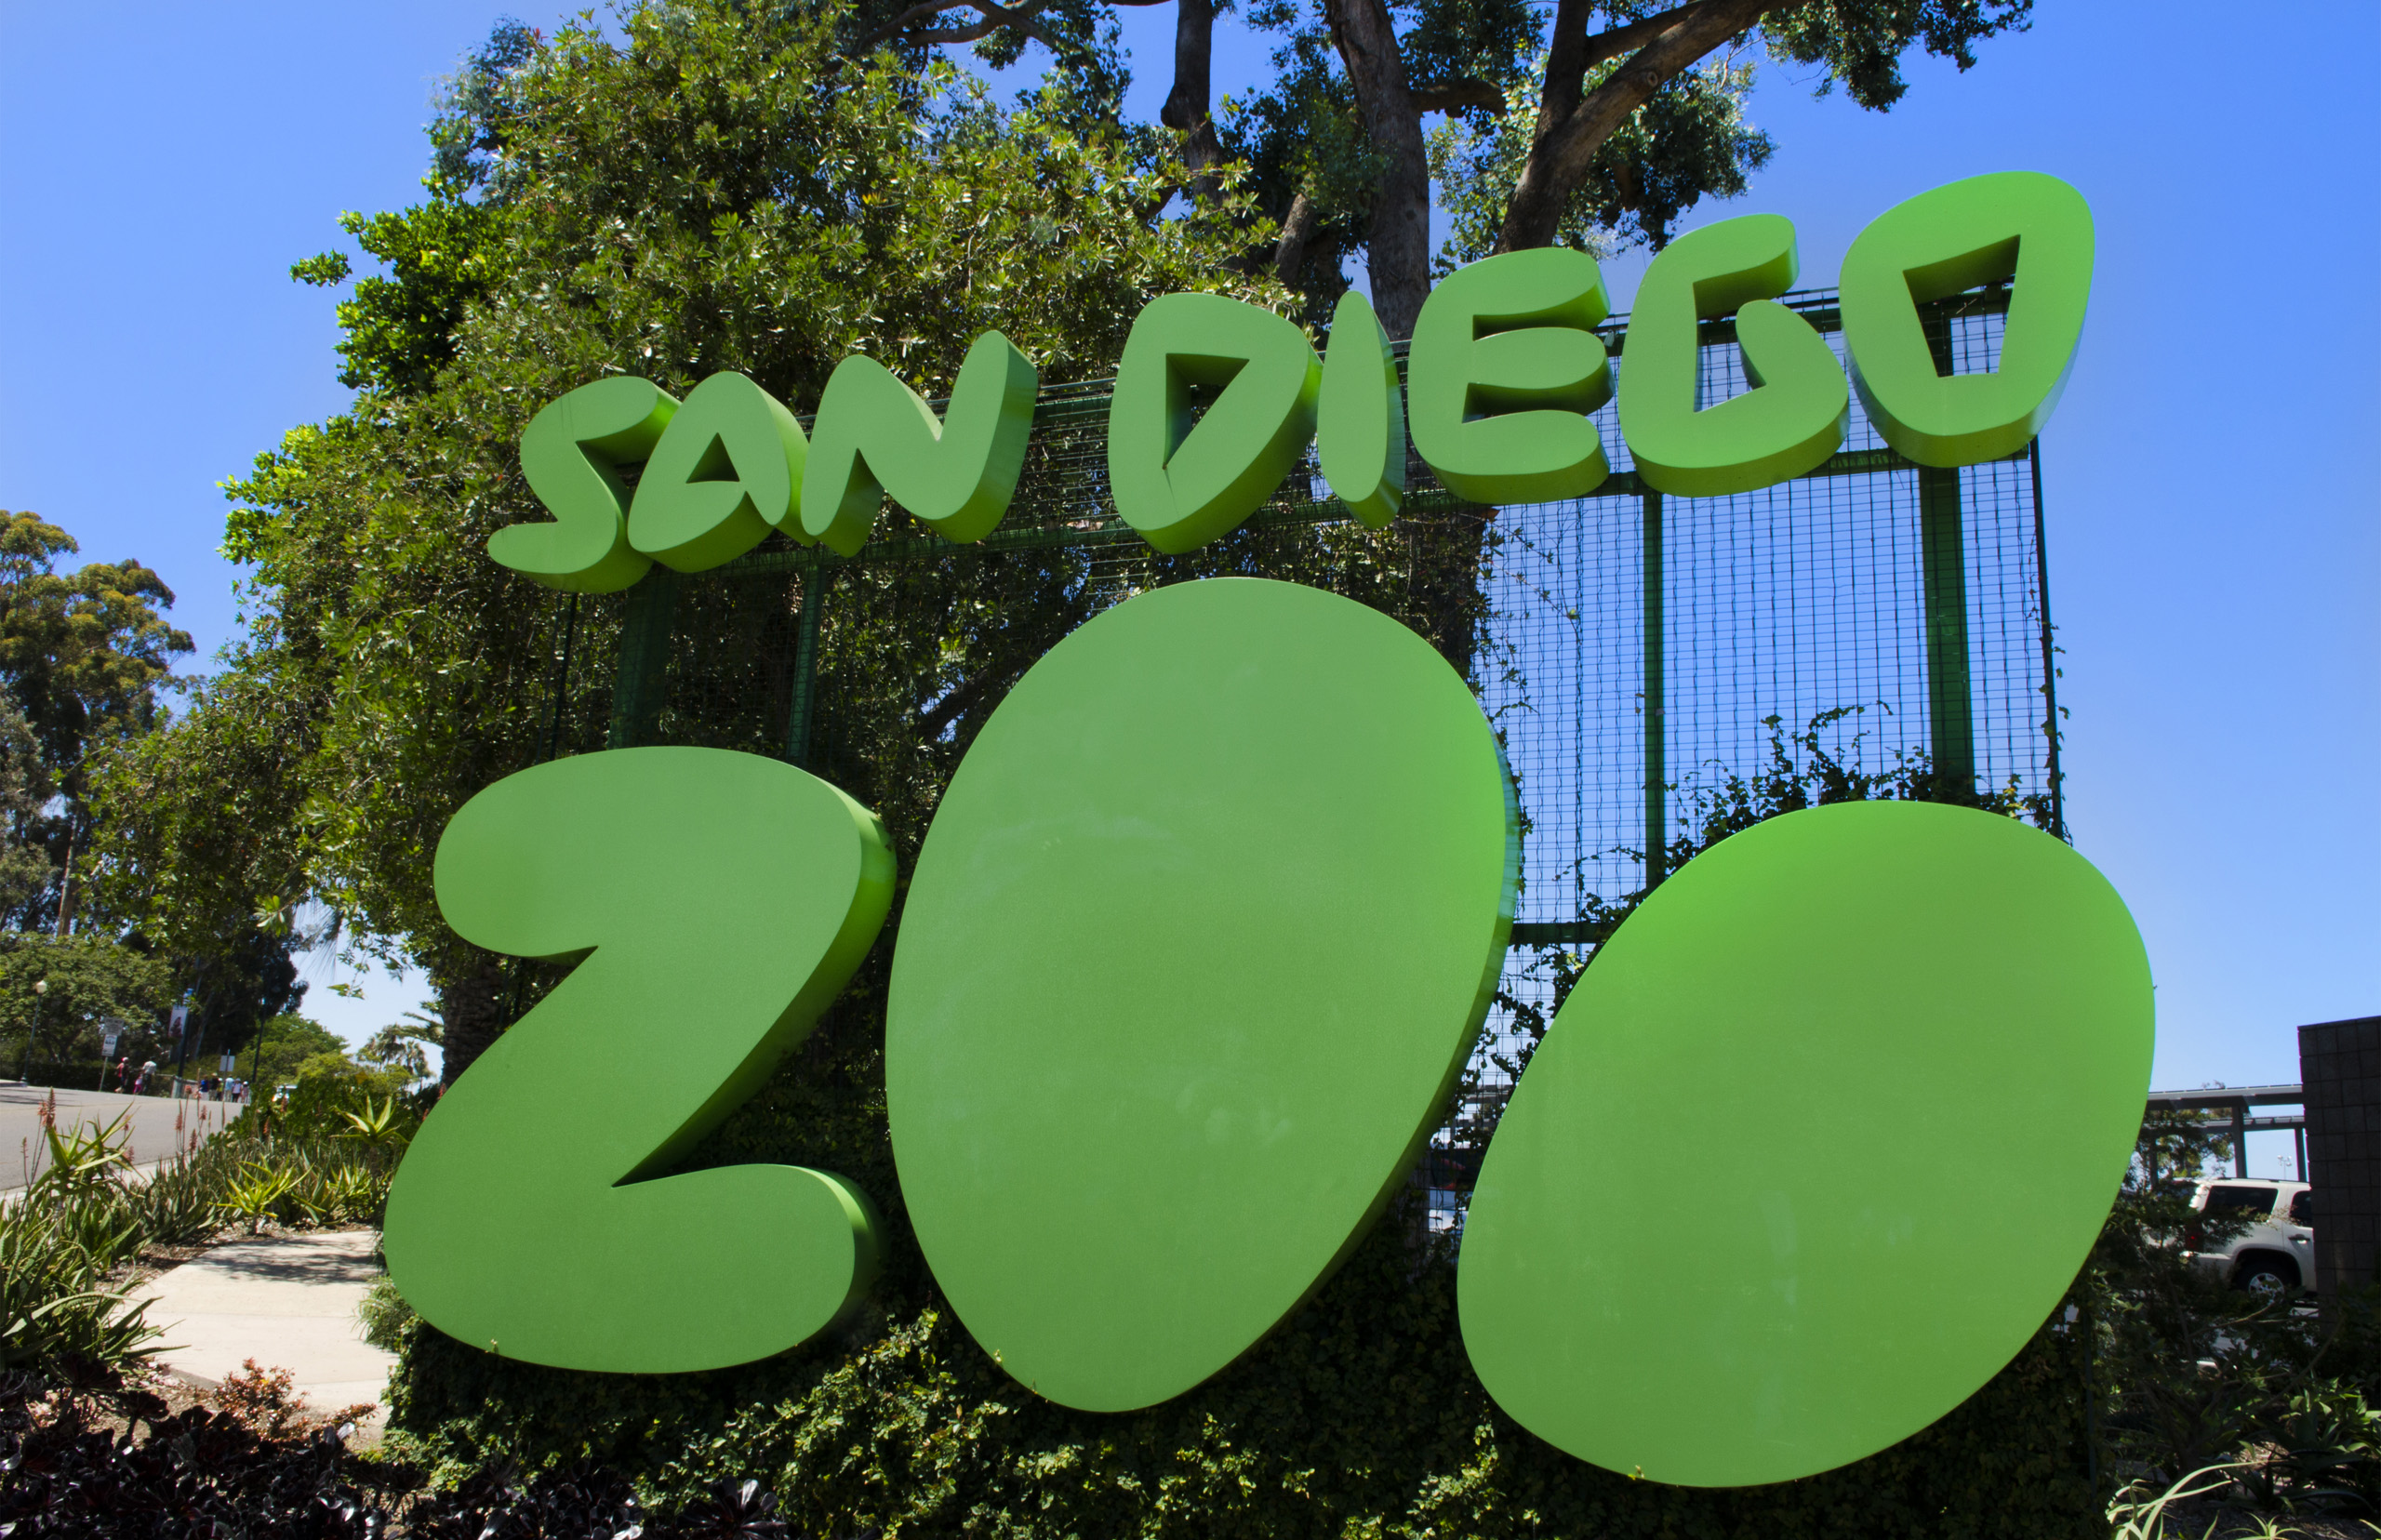 Famous San Diego Zoo sign in Balboa Park in San Diego.